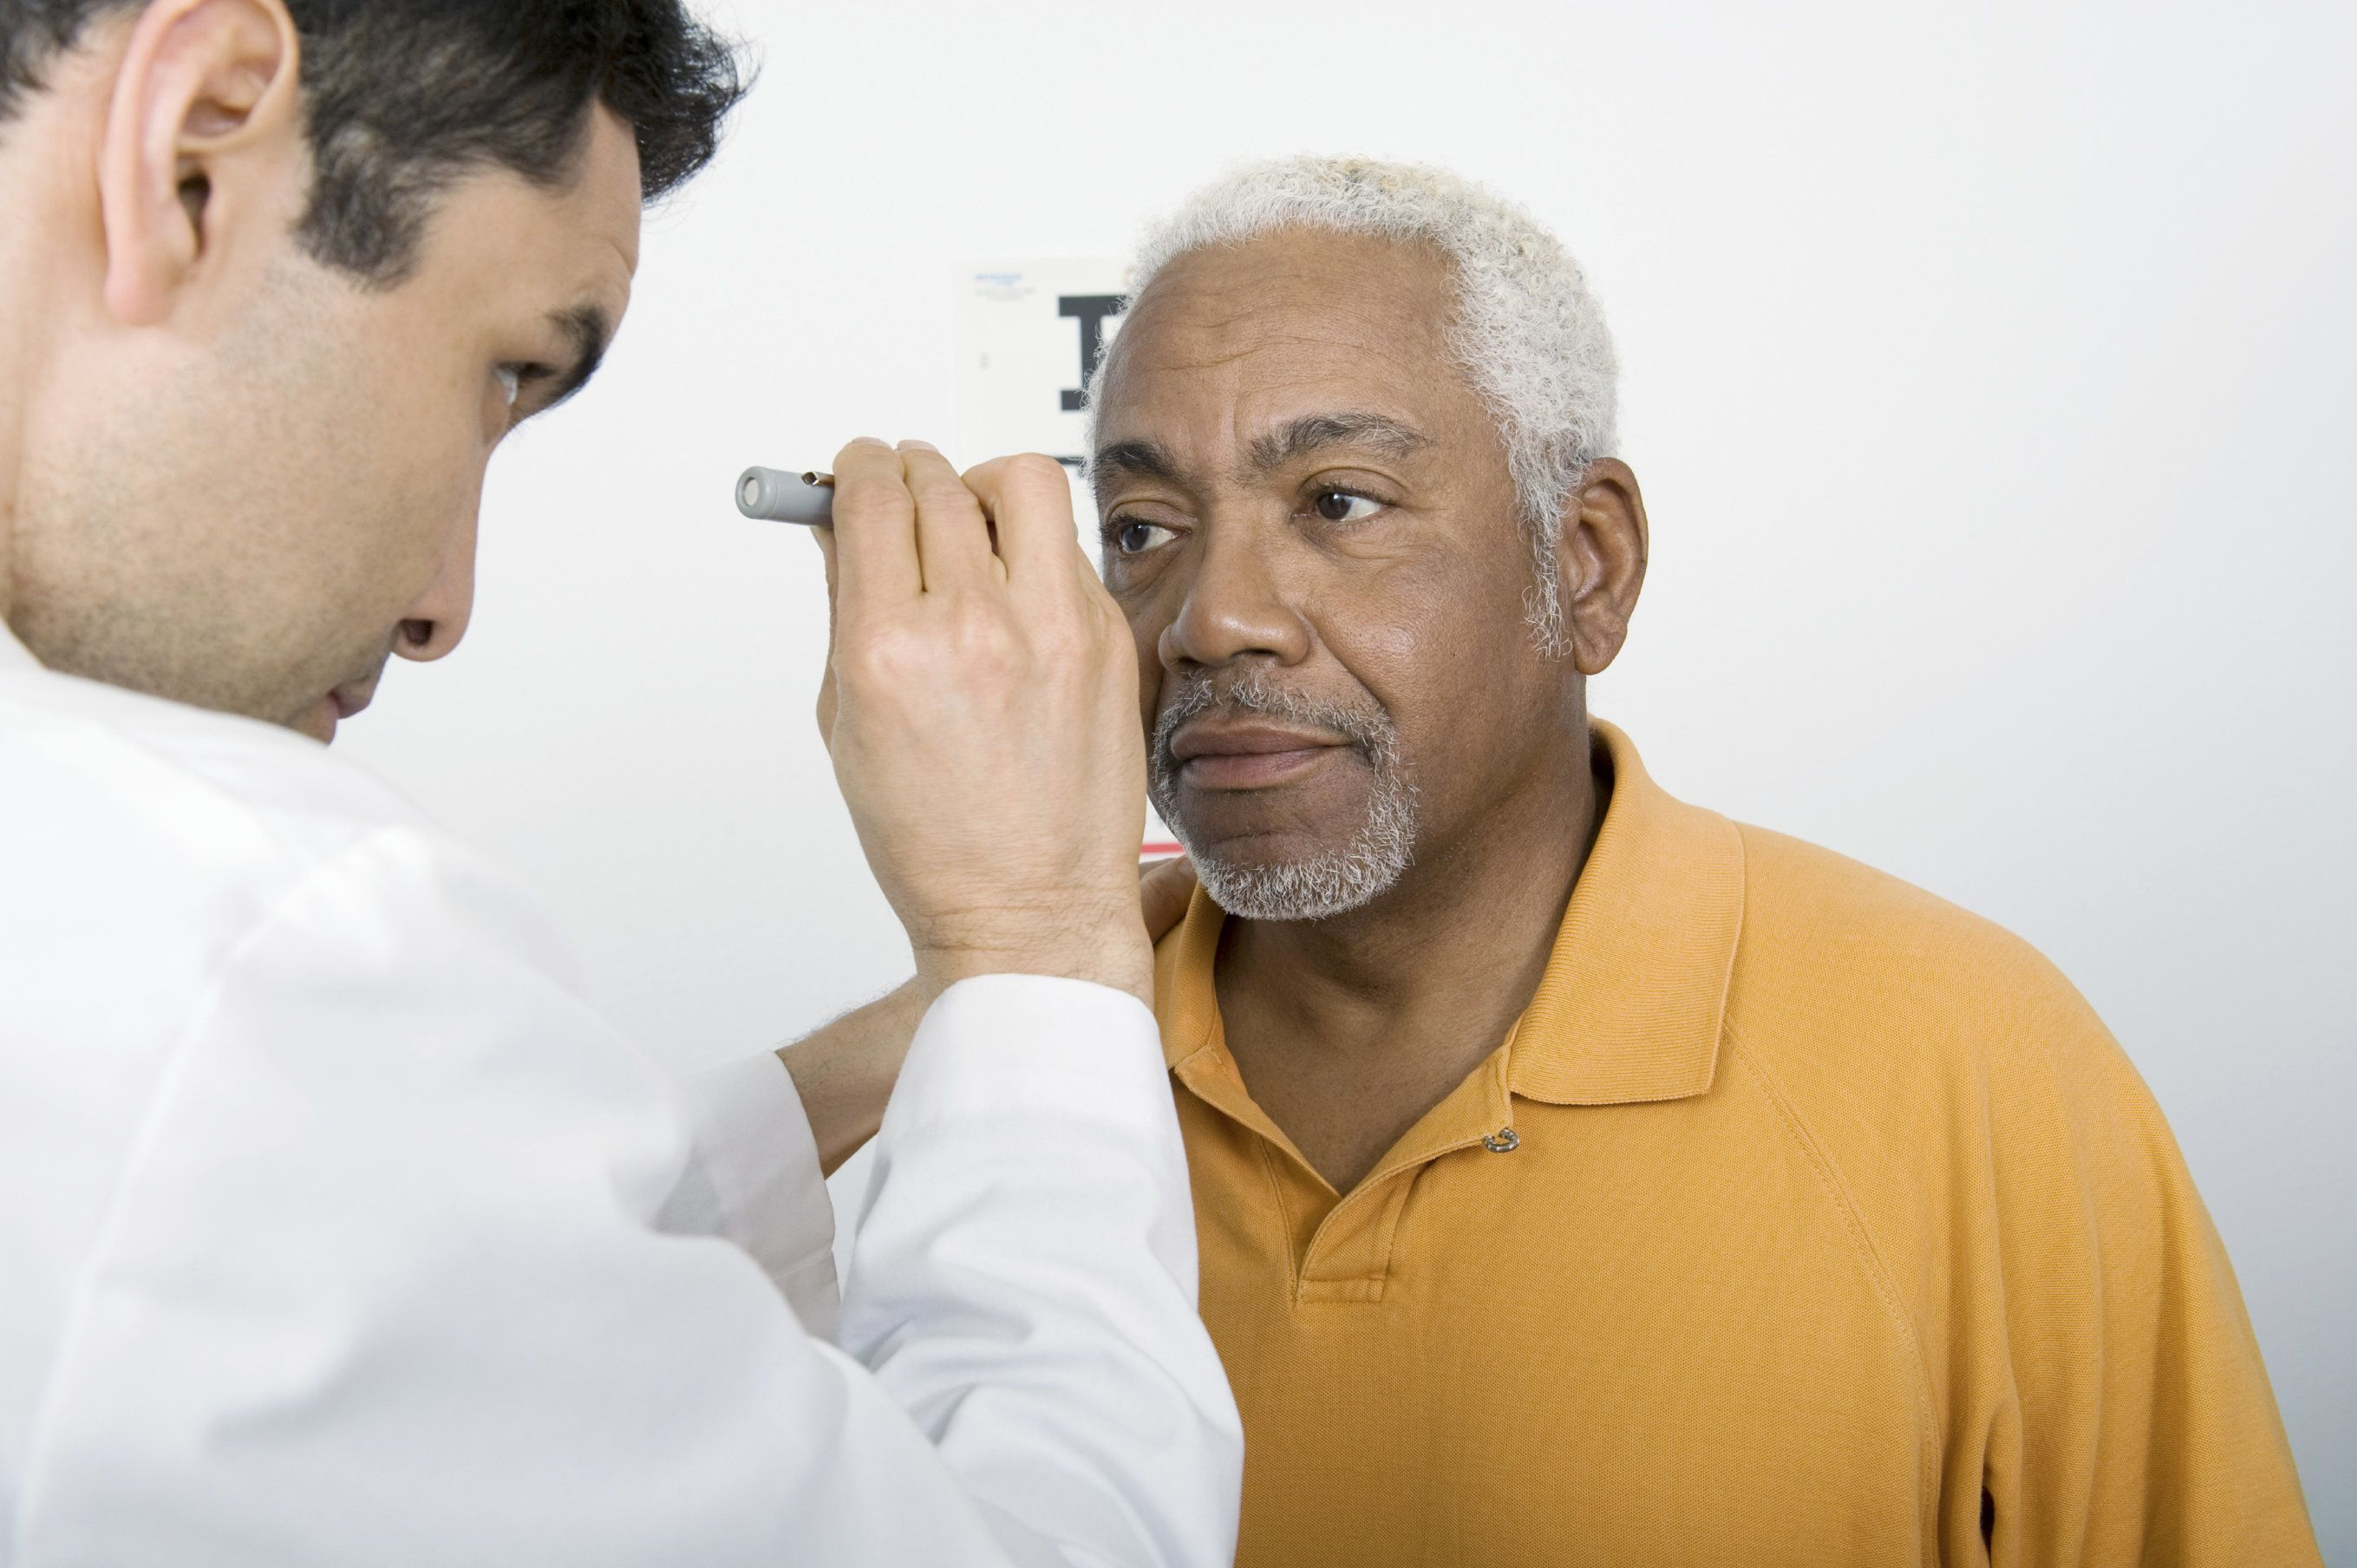 A man undergoing a glaucoma screening